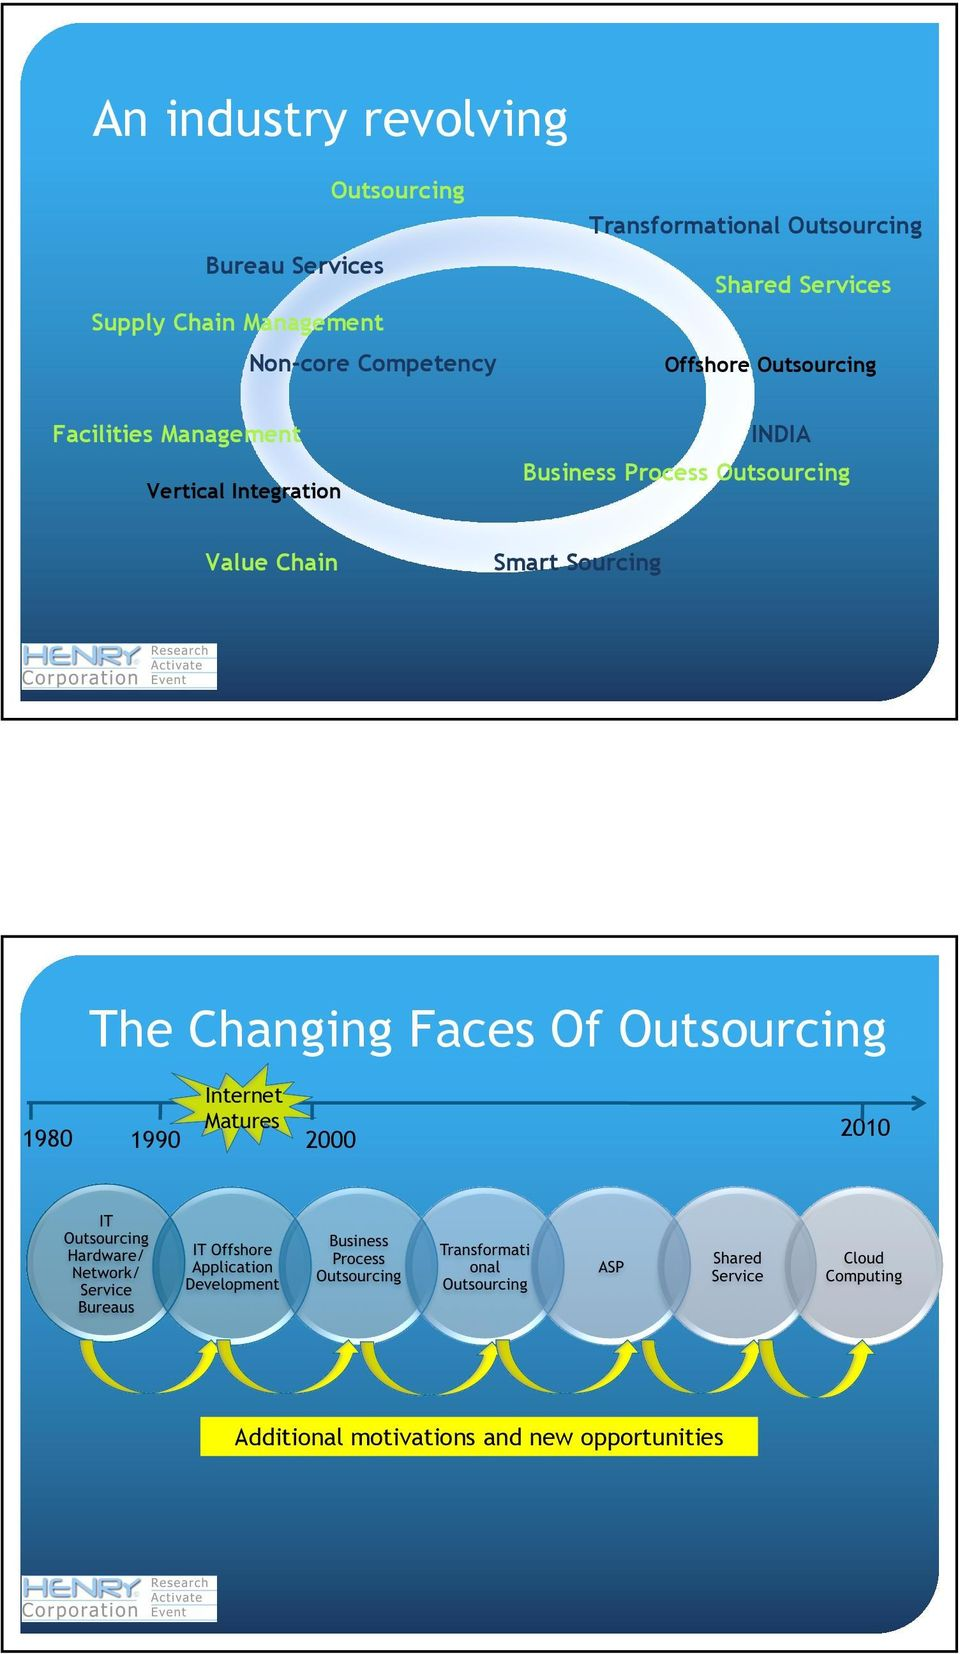 Vertical Integration INDIA Business Process Outsourcing Value Chain Smart Sourcing The